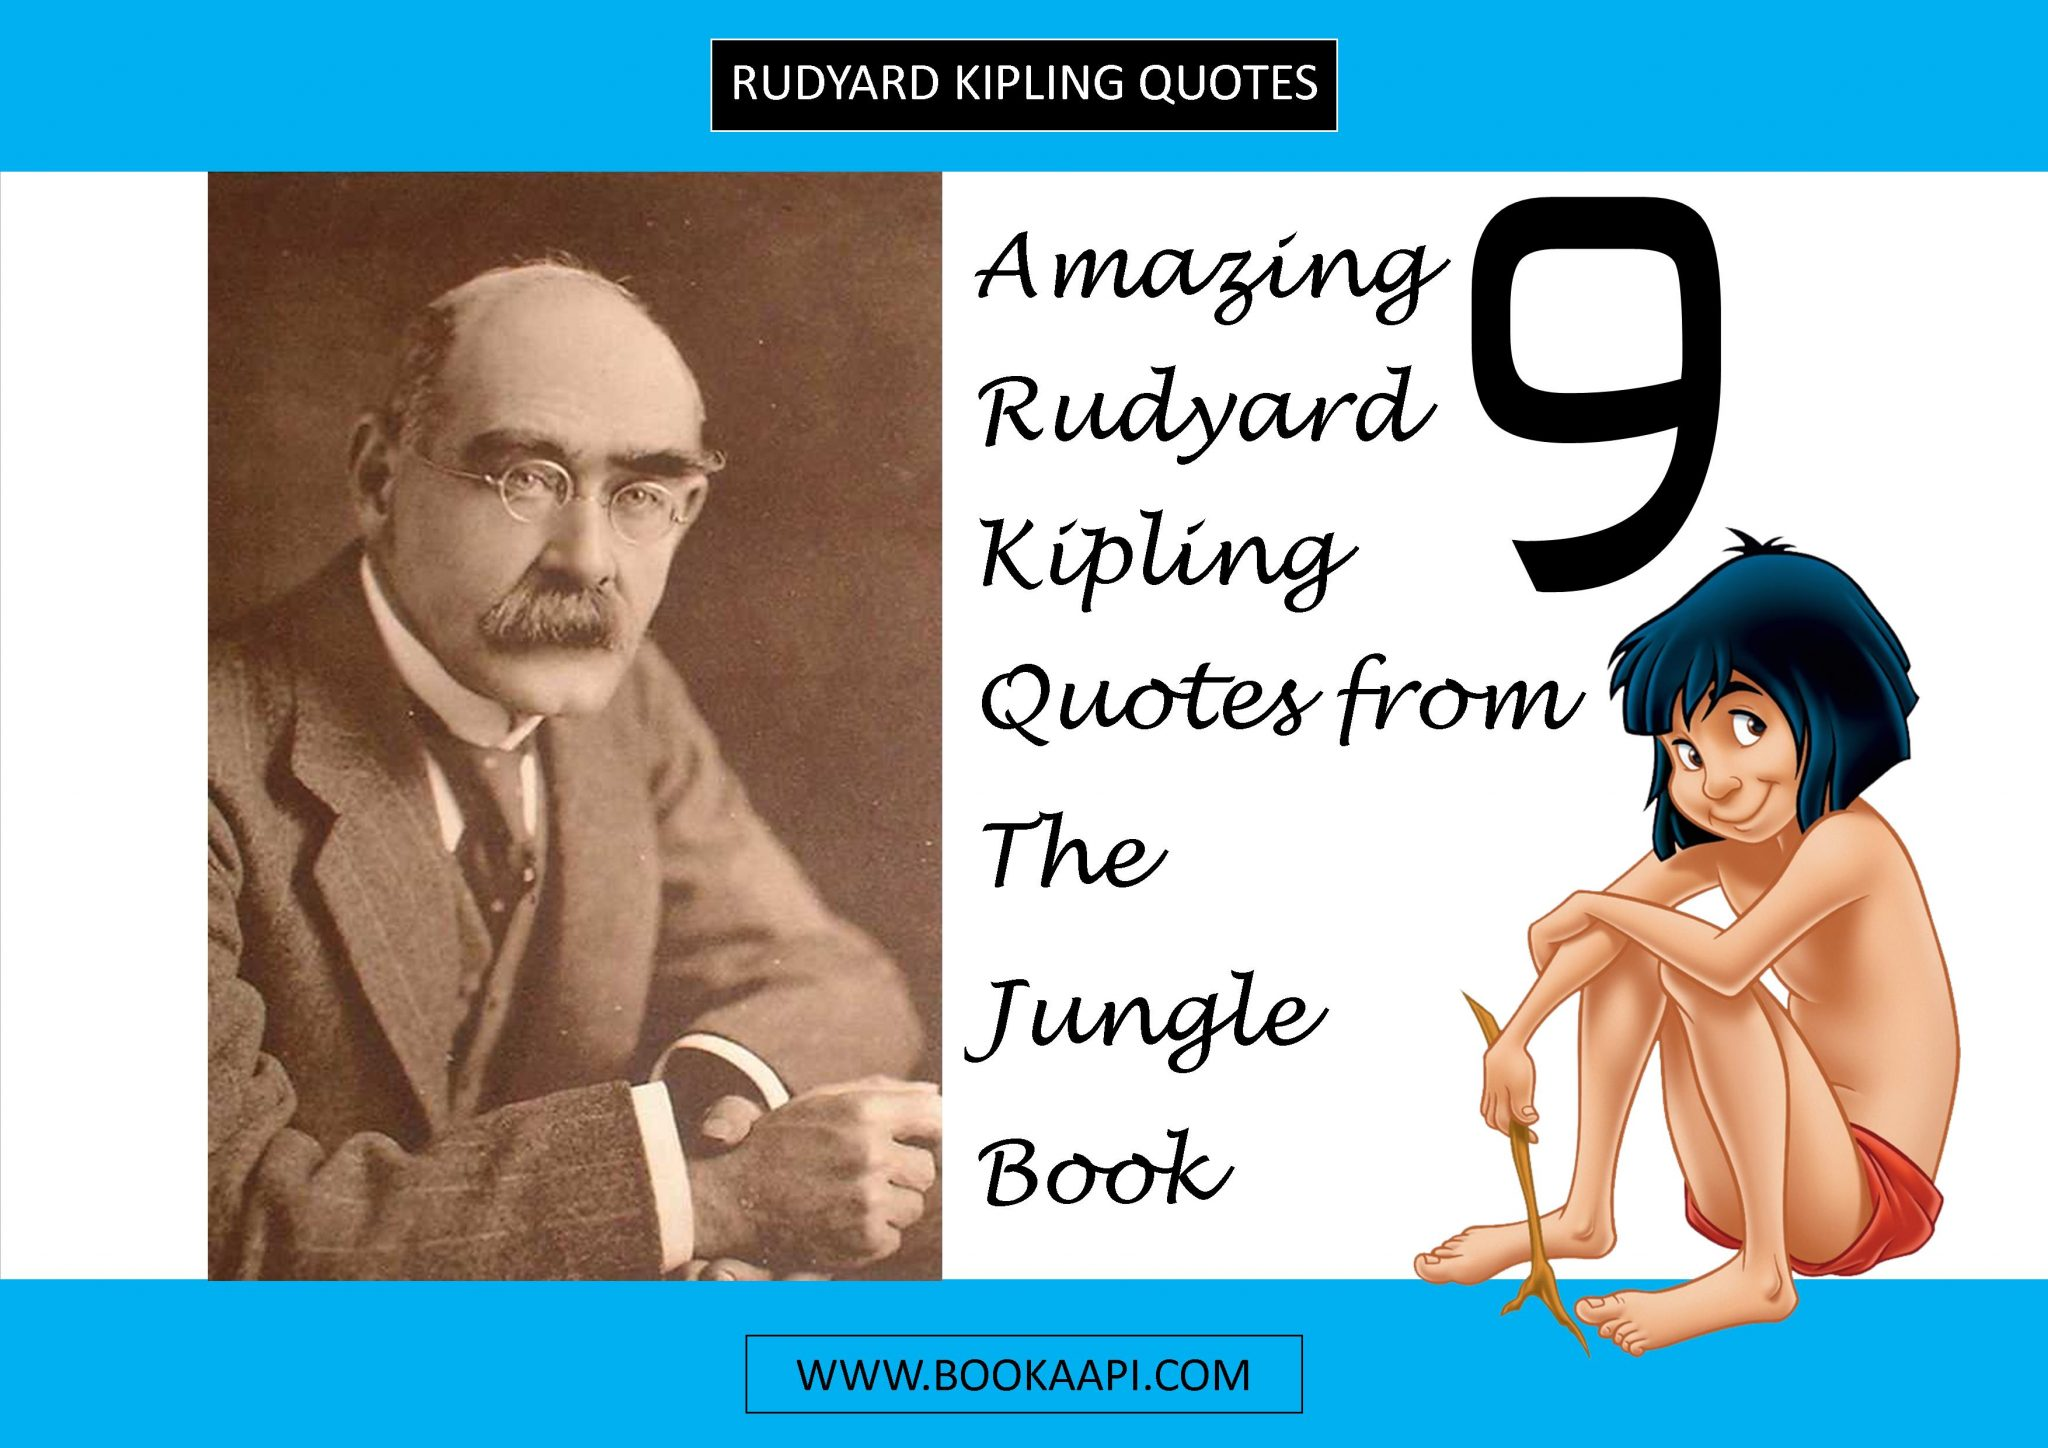 Jungle Book Quotes 9 Amazing Rudyard Kipling Quotes From The Jungle Book